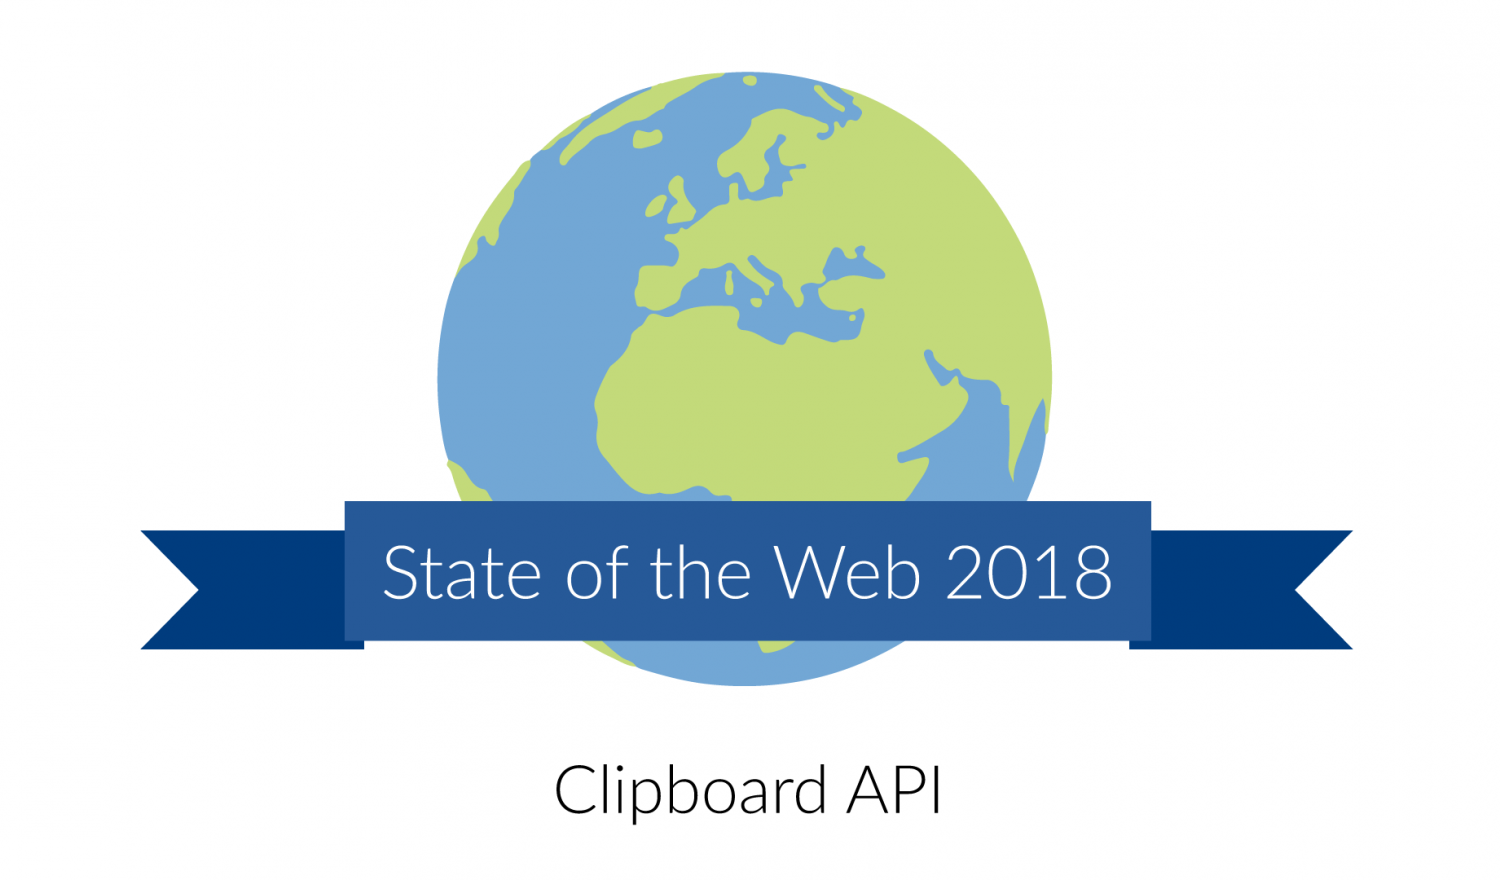 Clipboard API State of the Web